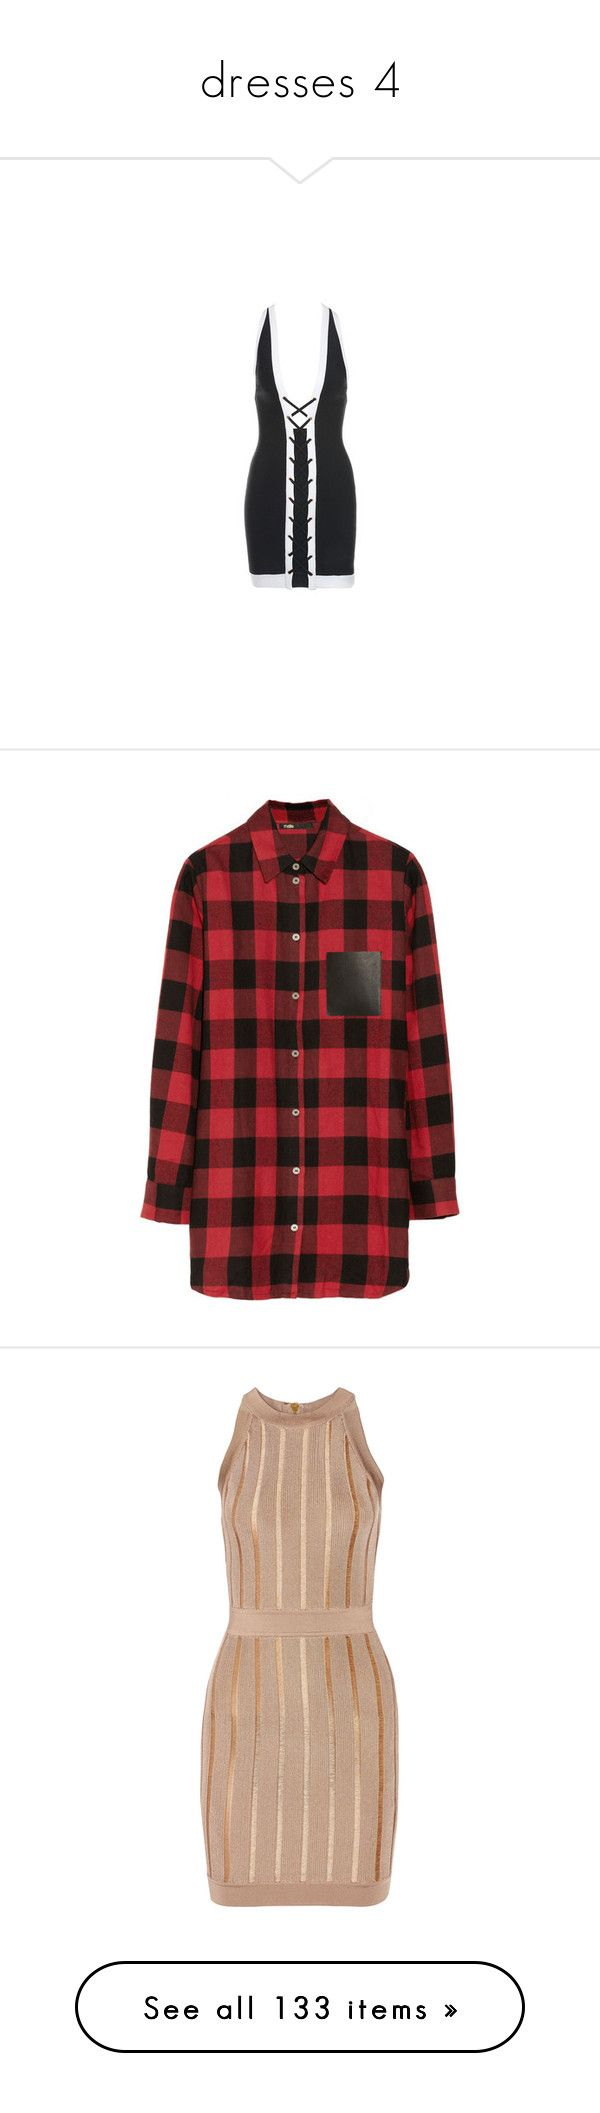 """""""dresses 4"""" by efiaeemnxo ❤ liked on Polyvore featuring dresses, tops, shirts, cotton shirts, red plaid top, sexy shirts, red cotton shirt, red shirt, vestidos and balmain"""